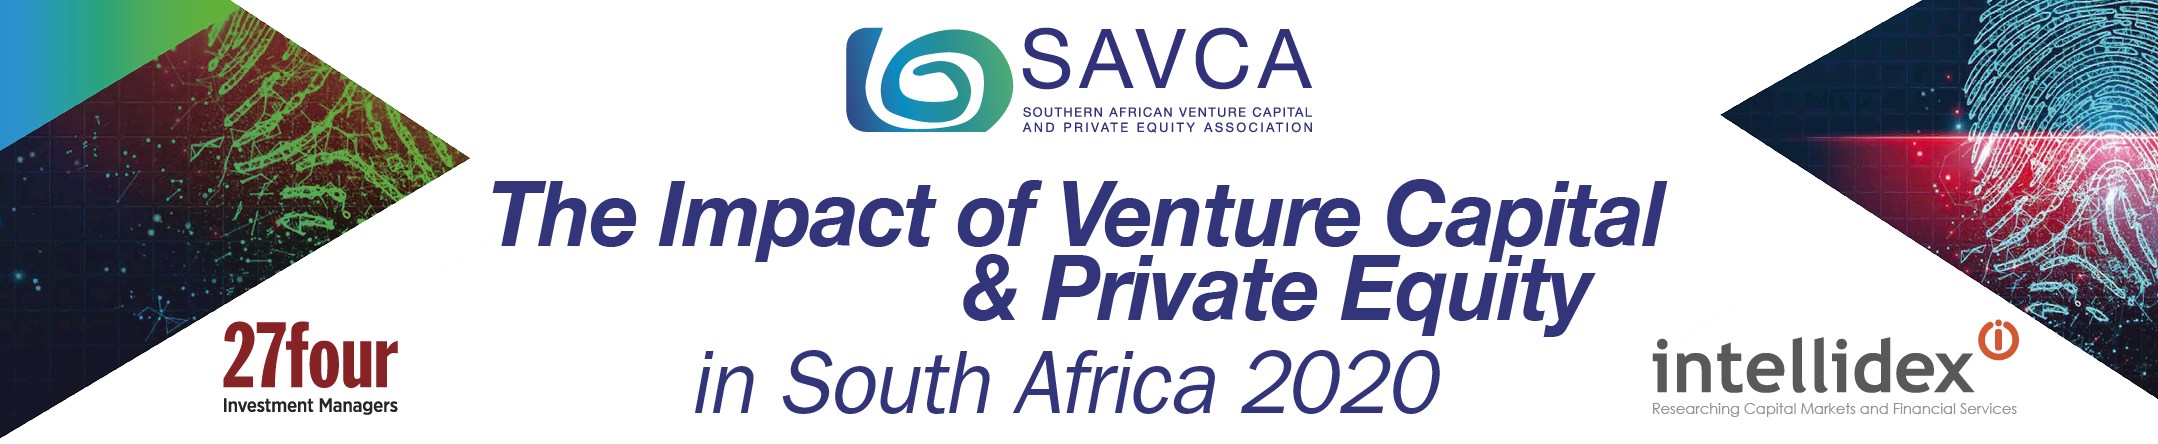 Click here to download the SAVCA 2020 Private Equity and Venture Capital Impact Study